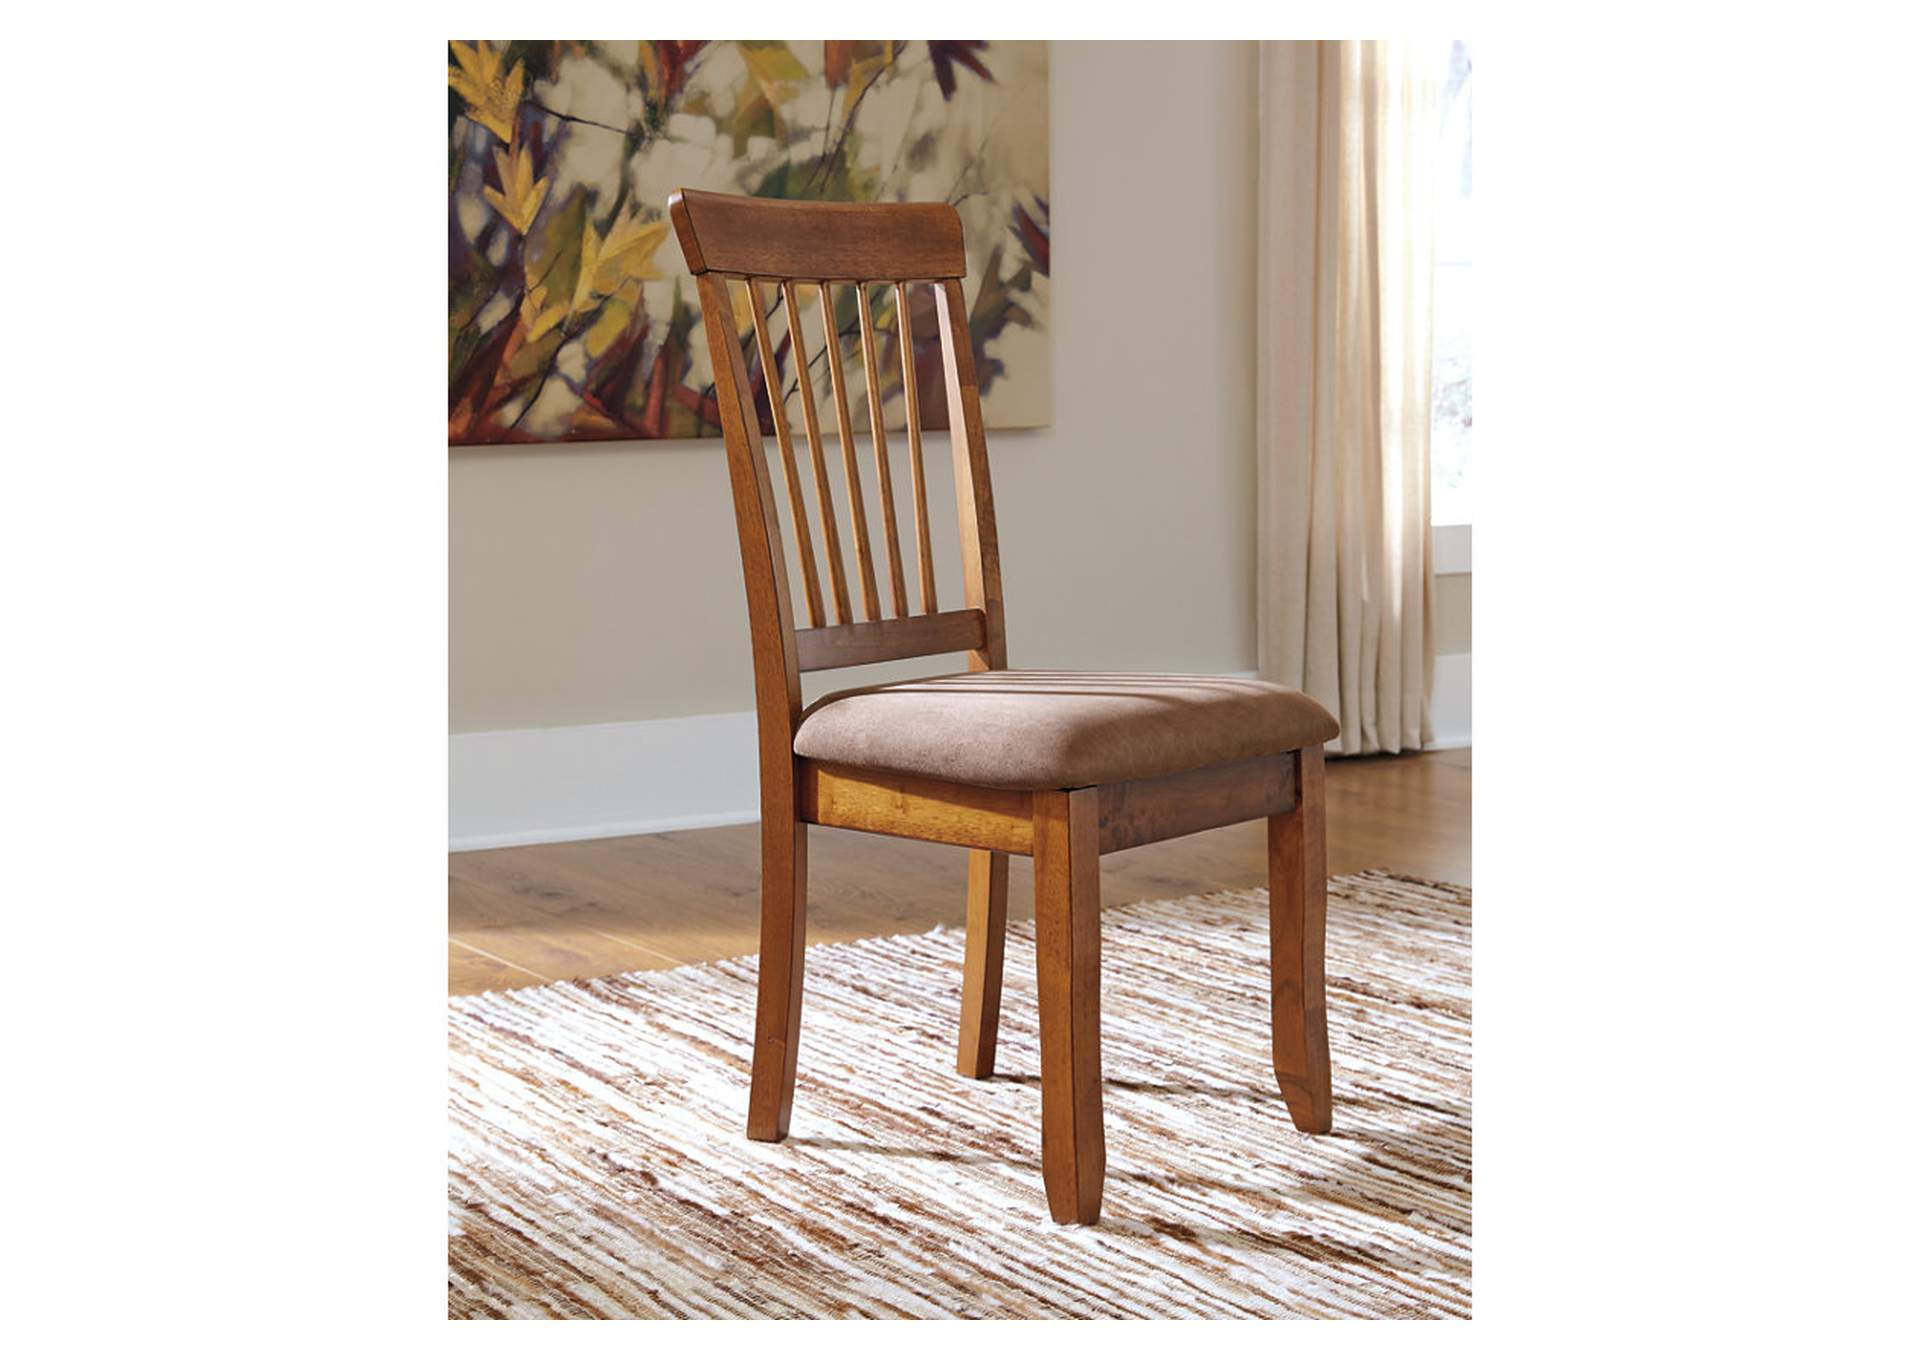 Berringer Dining Room Chair Ashley Furniture Homestore Independently Owned And Operated By Nphc Trading Co Ltd